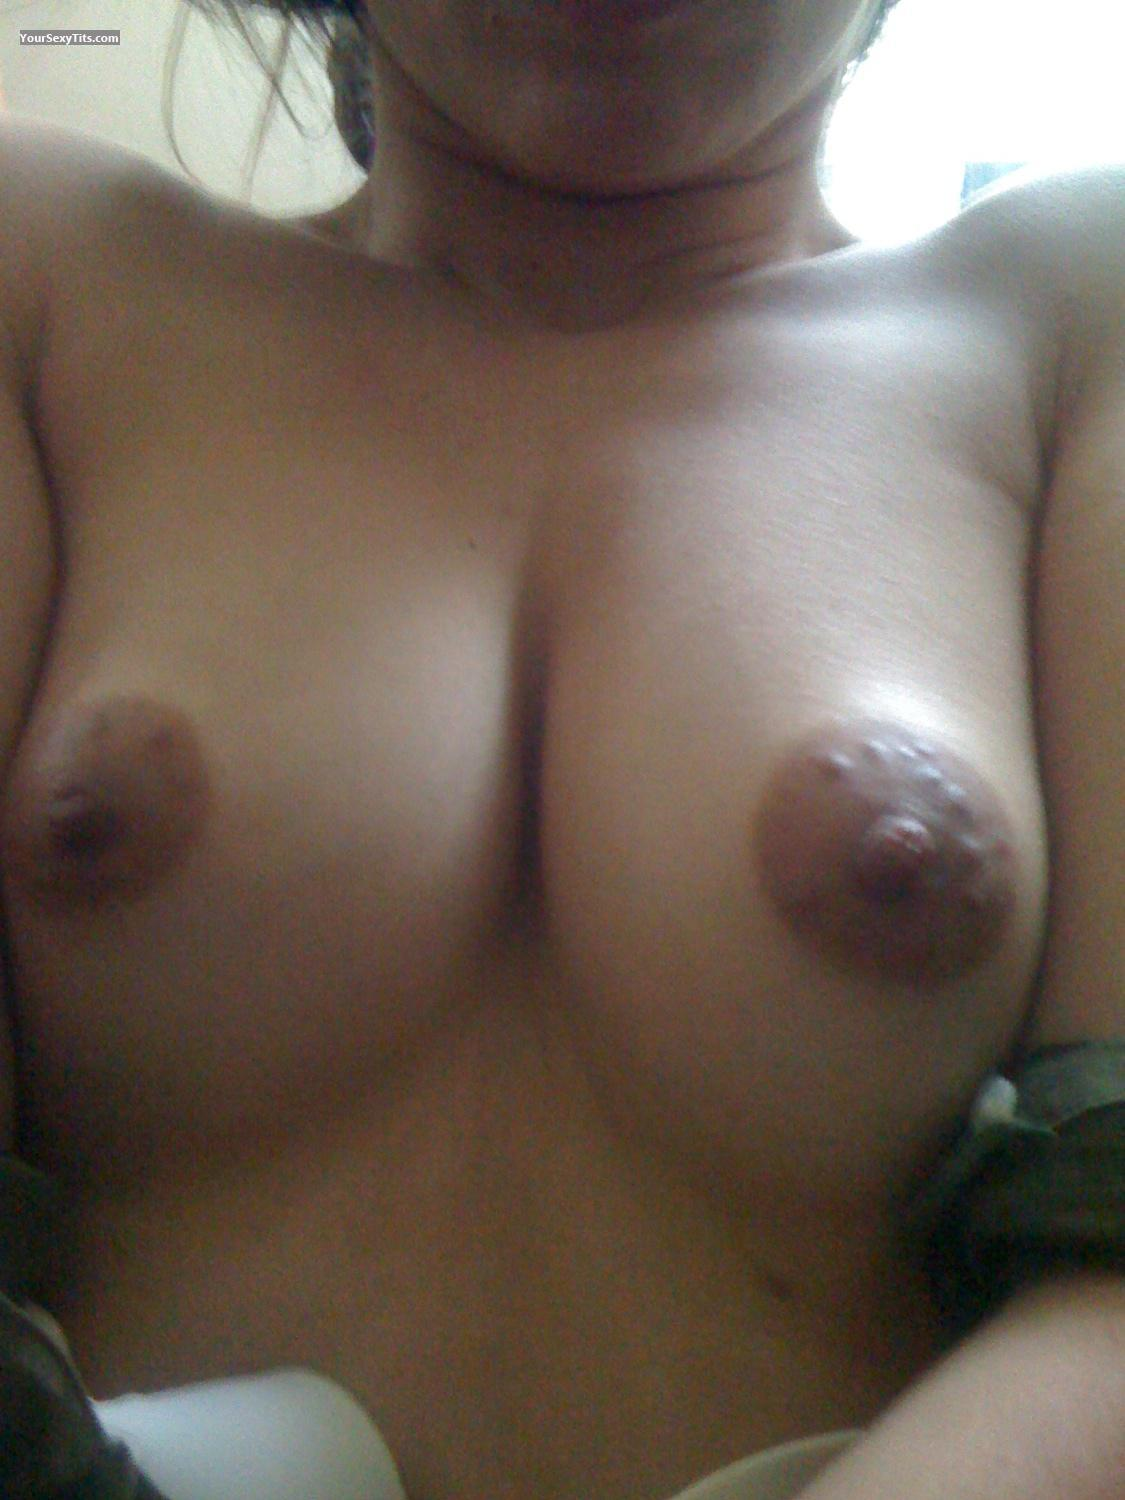 Tit Flash: My Medium Tits By IPhone (Selfie) - Prettyinpink from United States